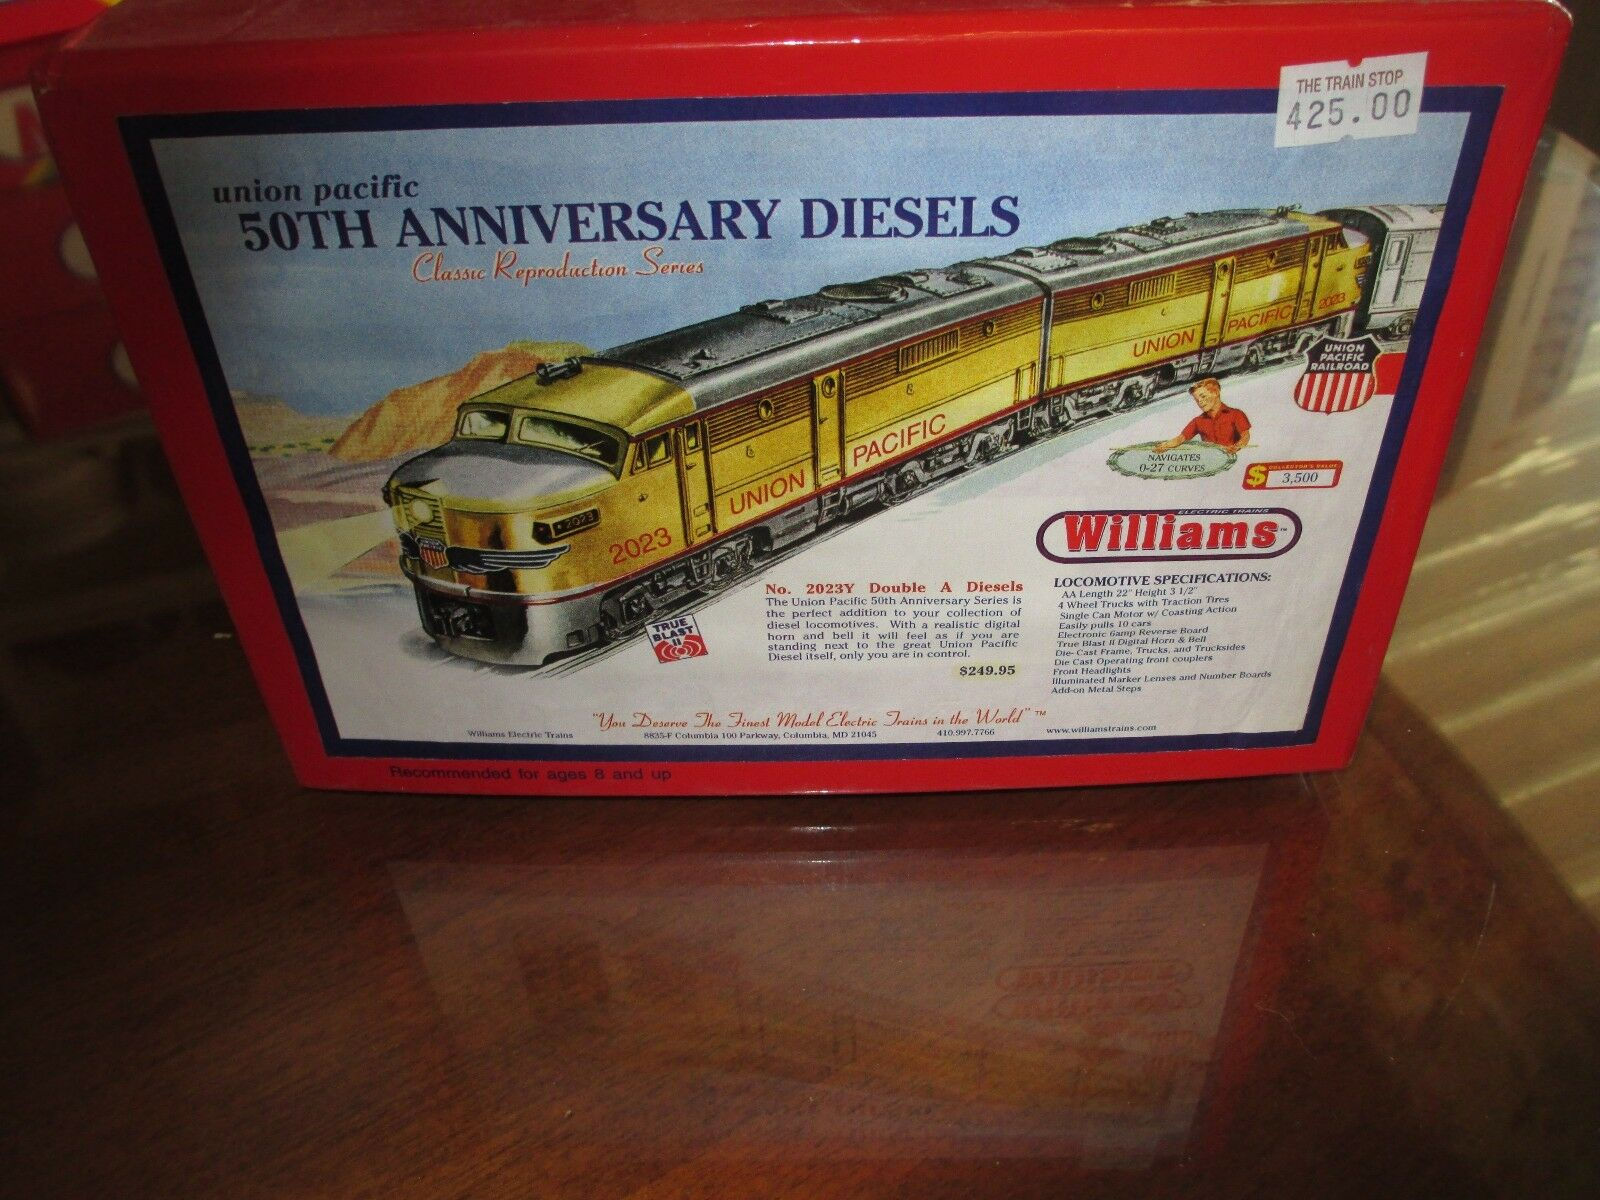 WILLIAMS 50th ANNIVERSARY - Union Pacific Classic Reproduction Series Train Set